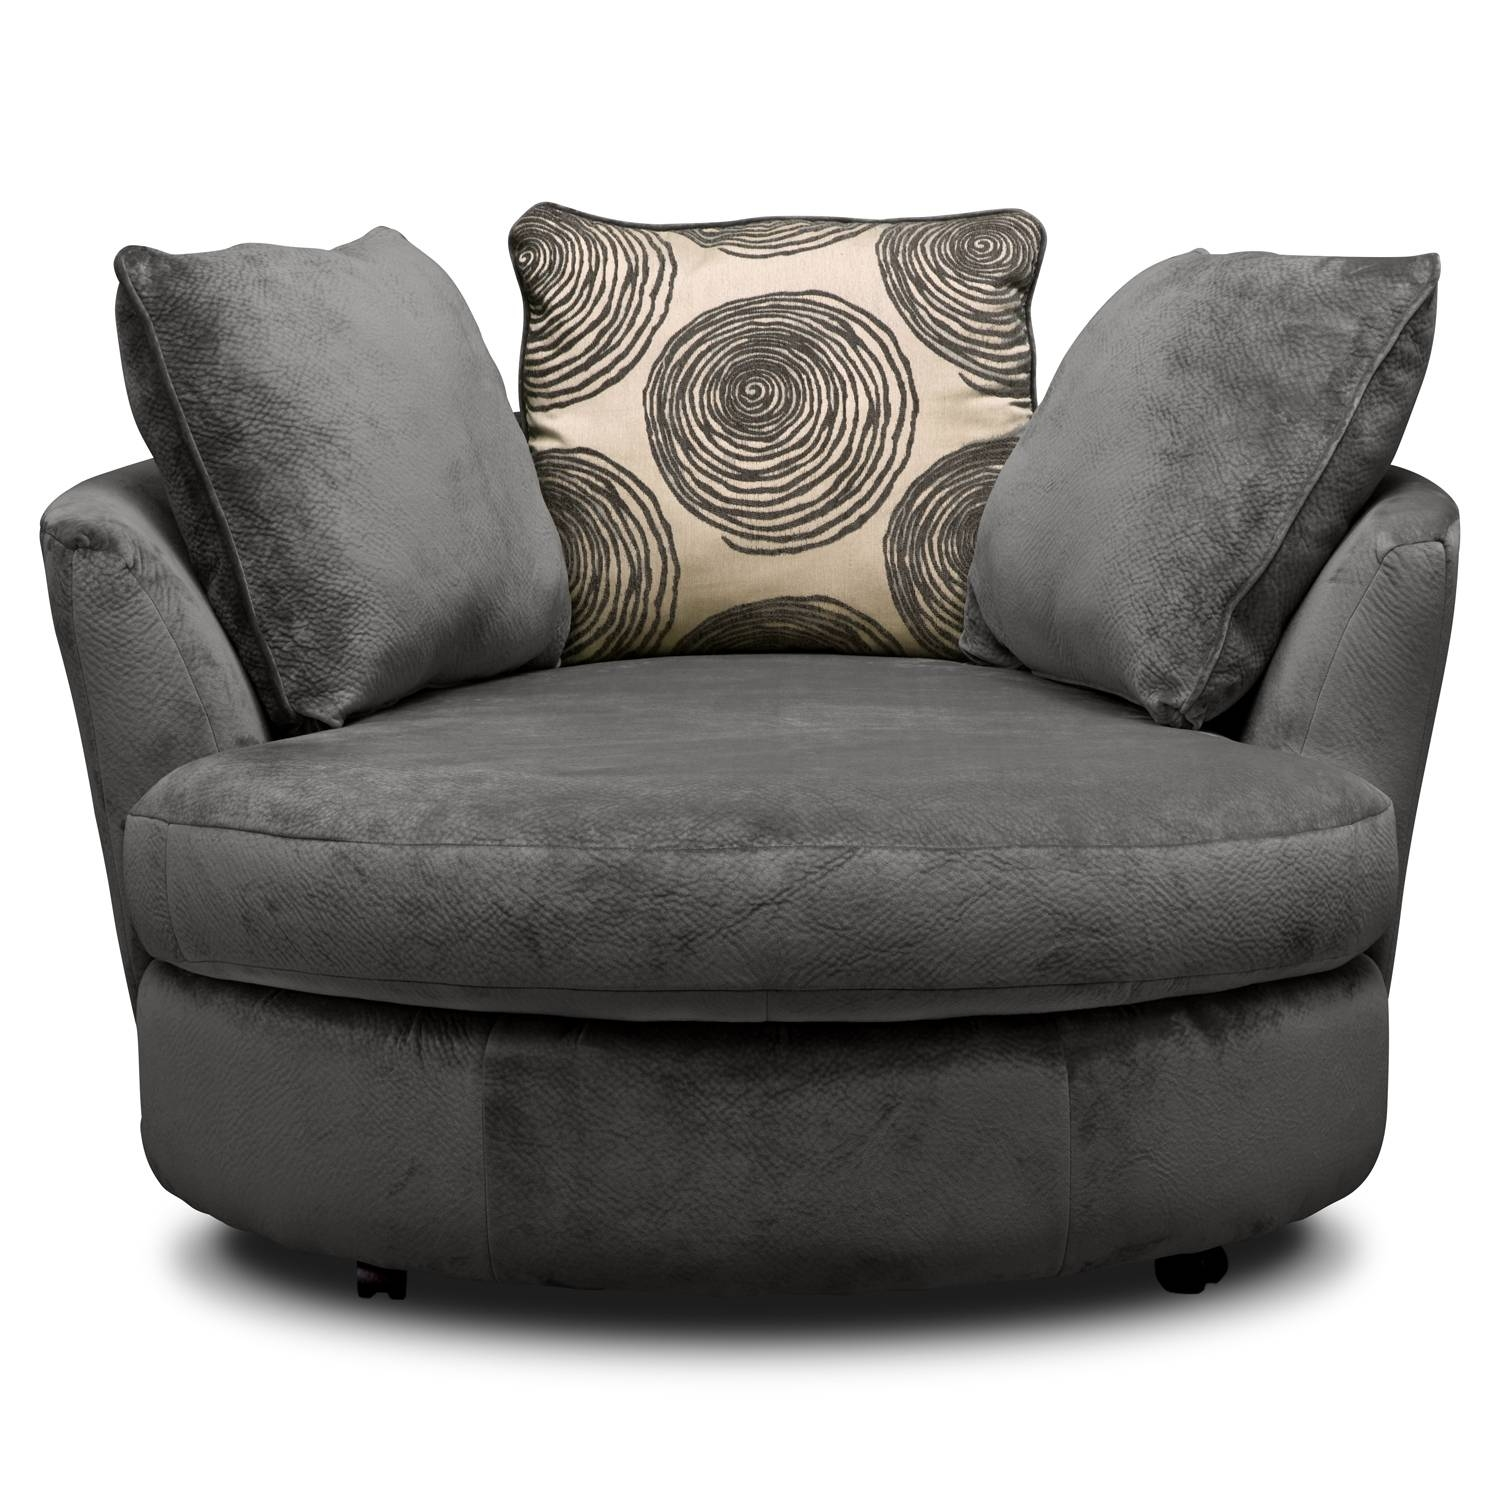 Lovely Swivel Sofa Chair 45 On Living Room Sofa Inspiration With for Spinning Sofa Chairs (Image 14 of 30)